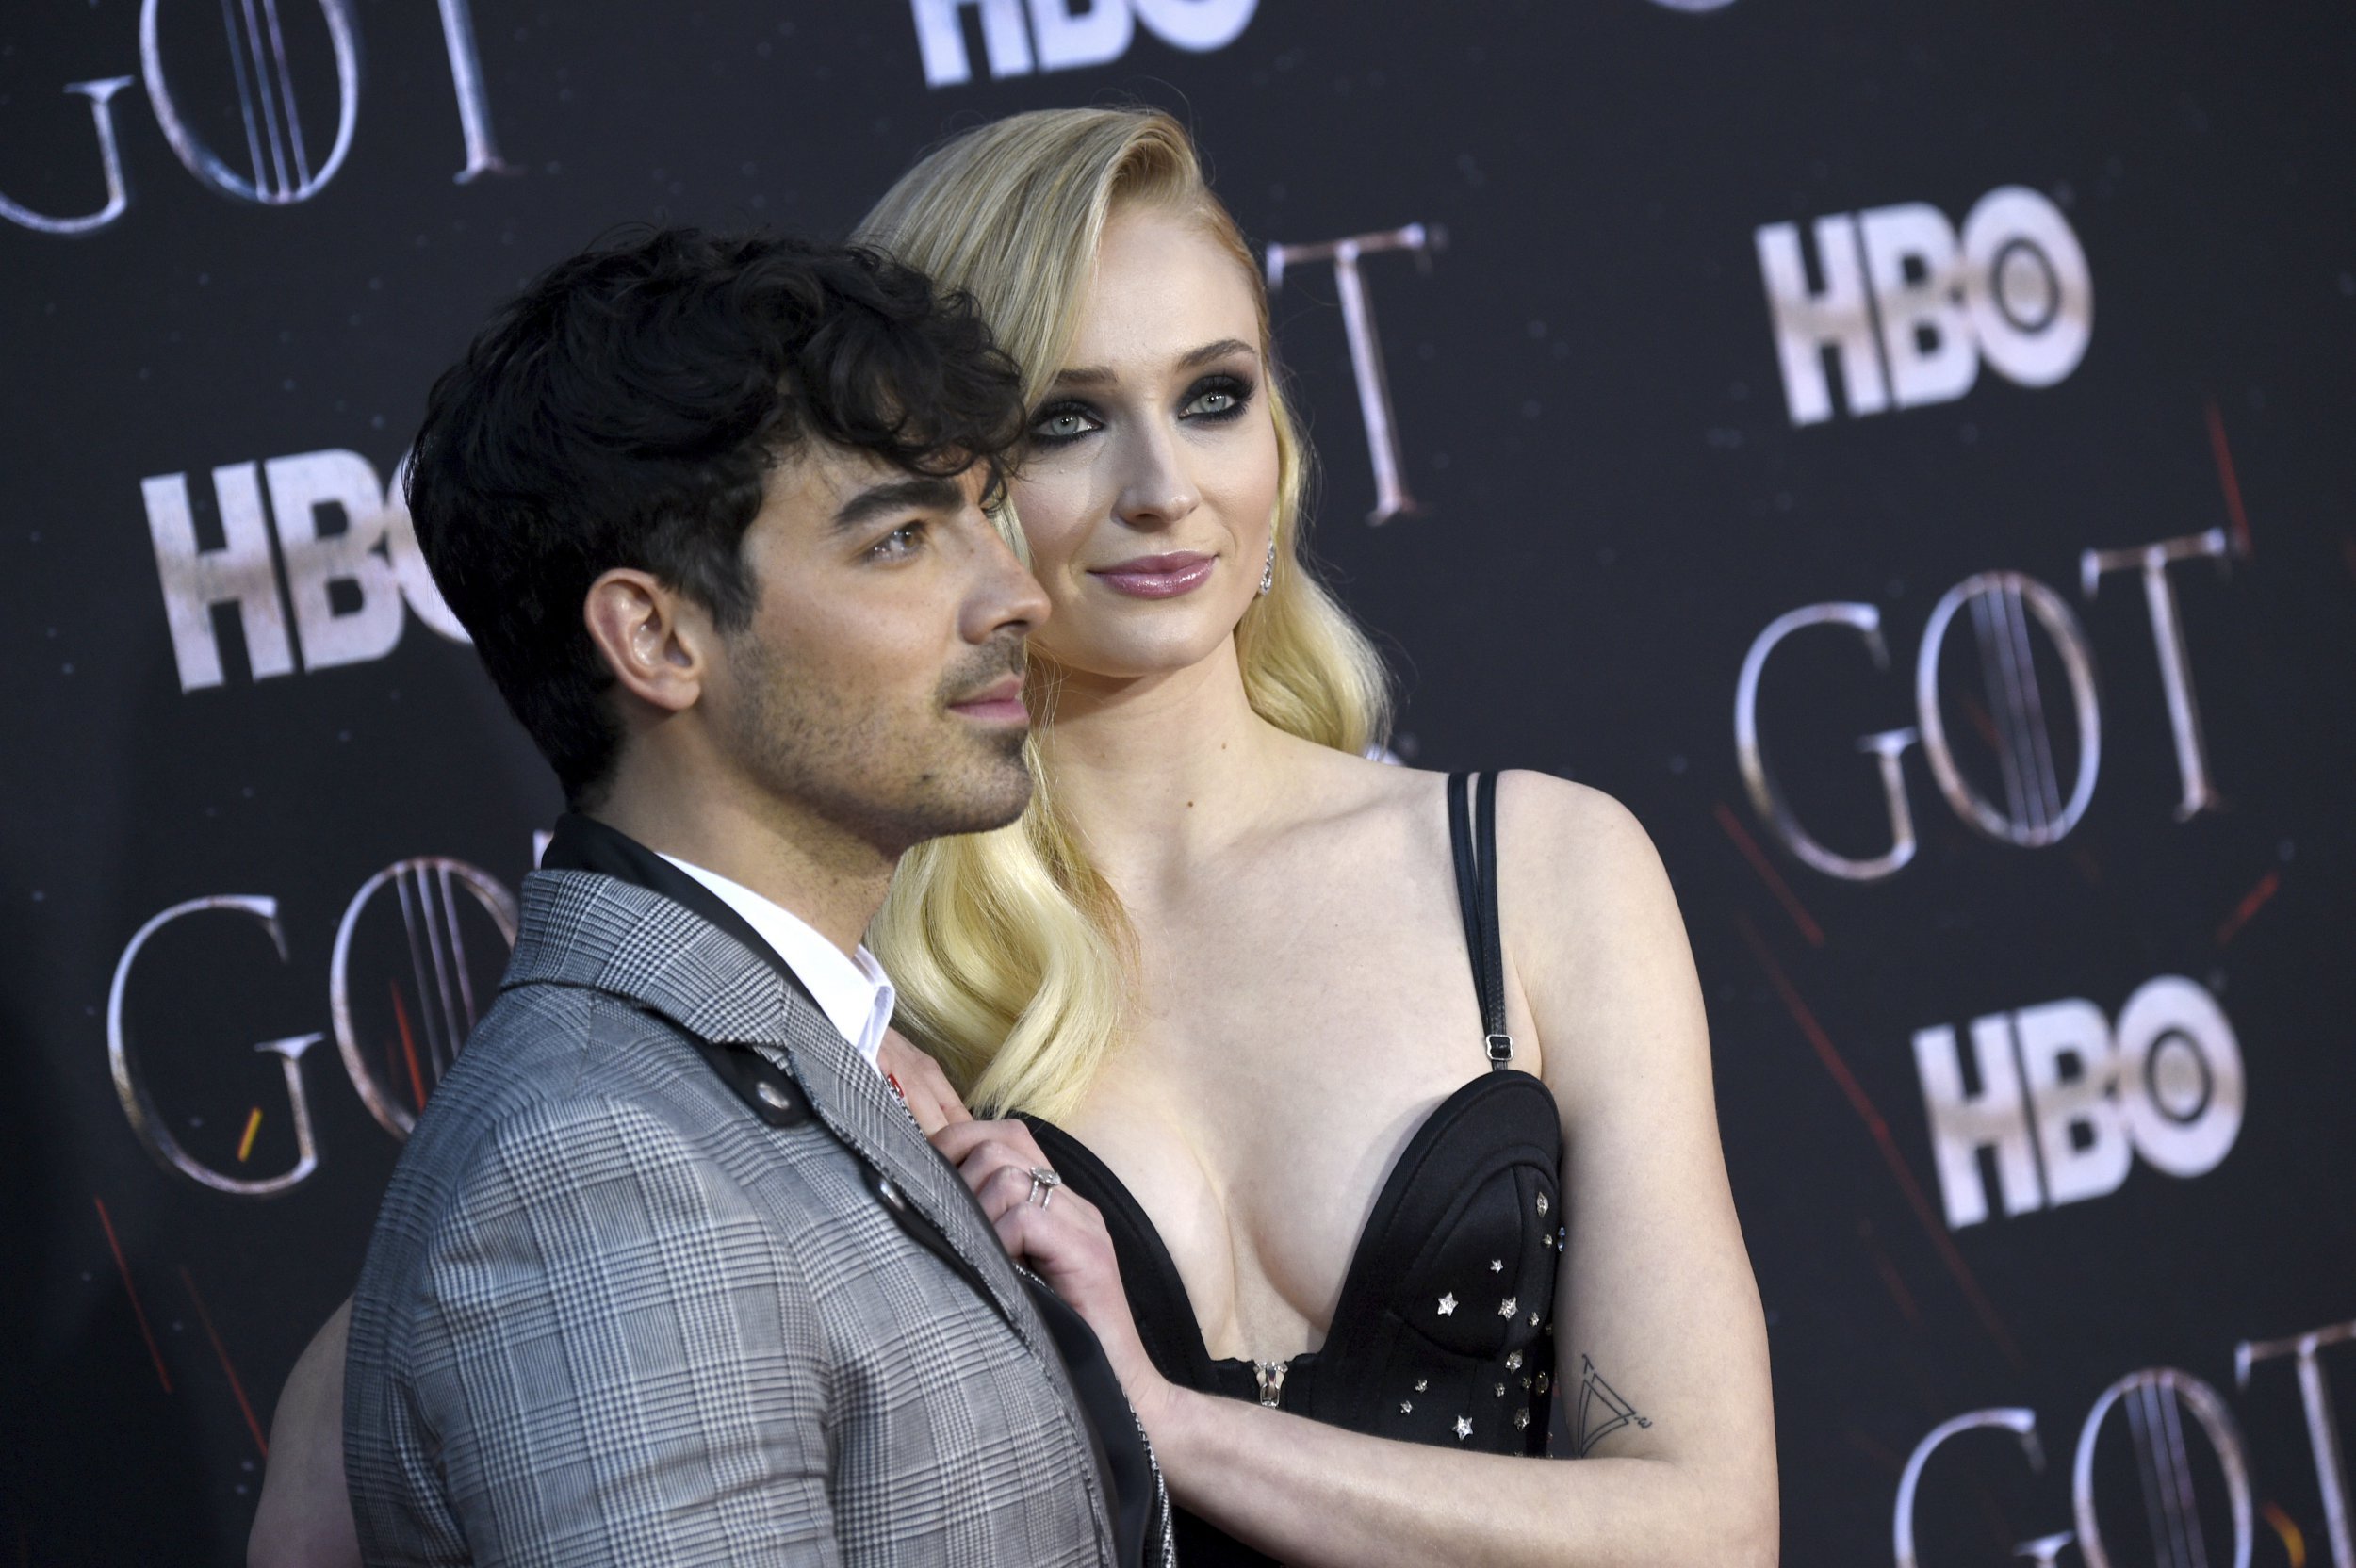 Game of Throne's Sophie Turner's wedding to Joe Jonas: Everything we know so far